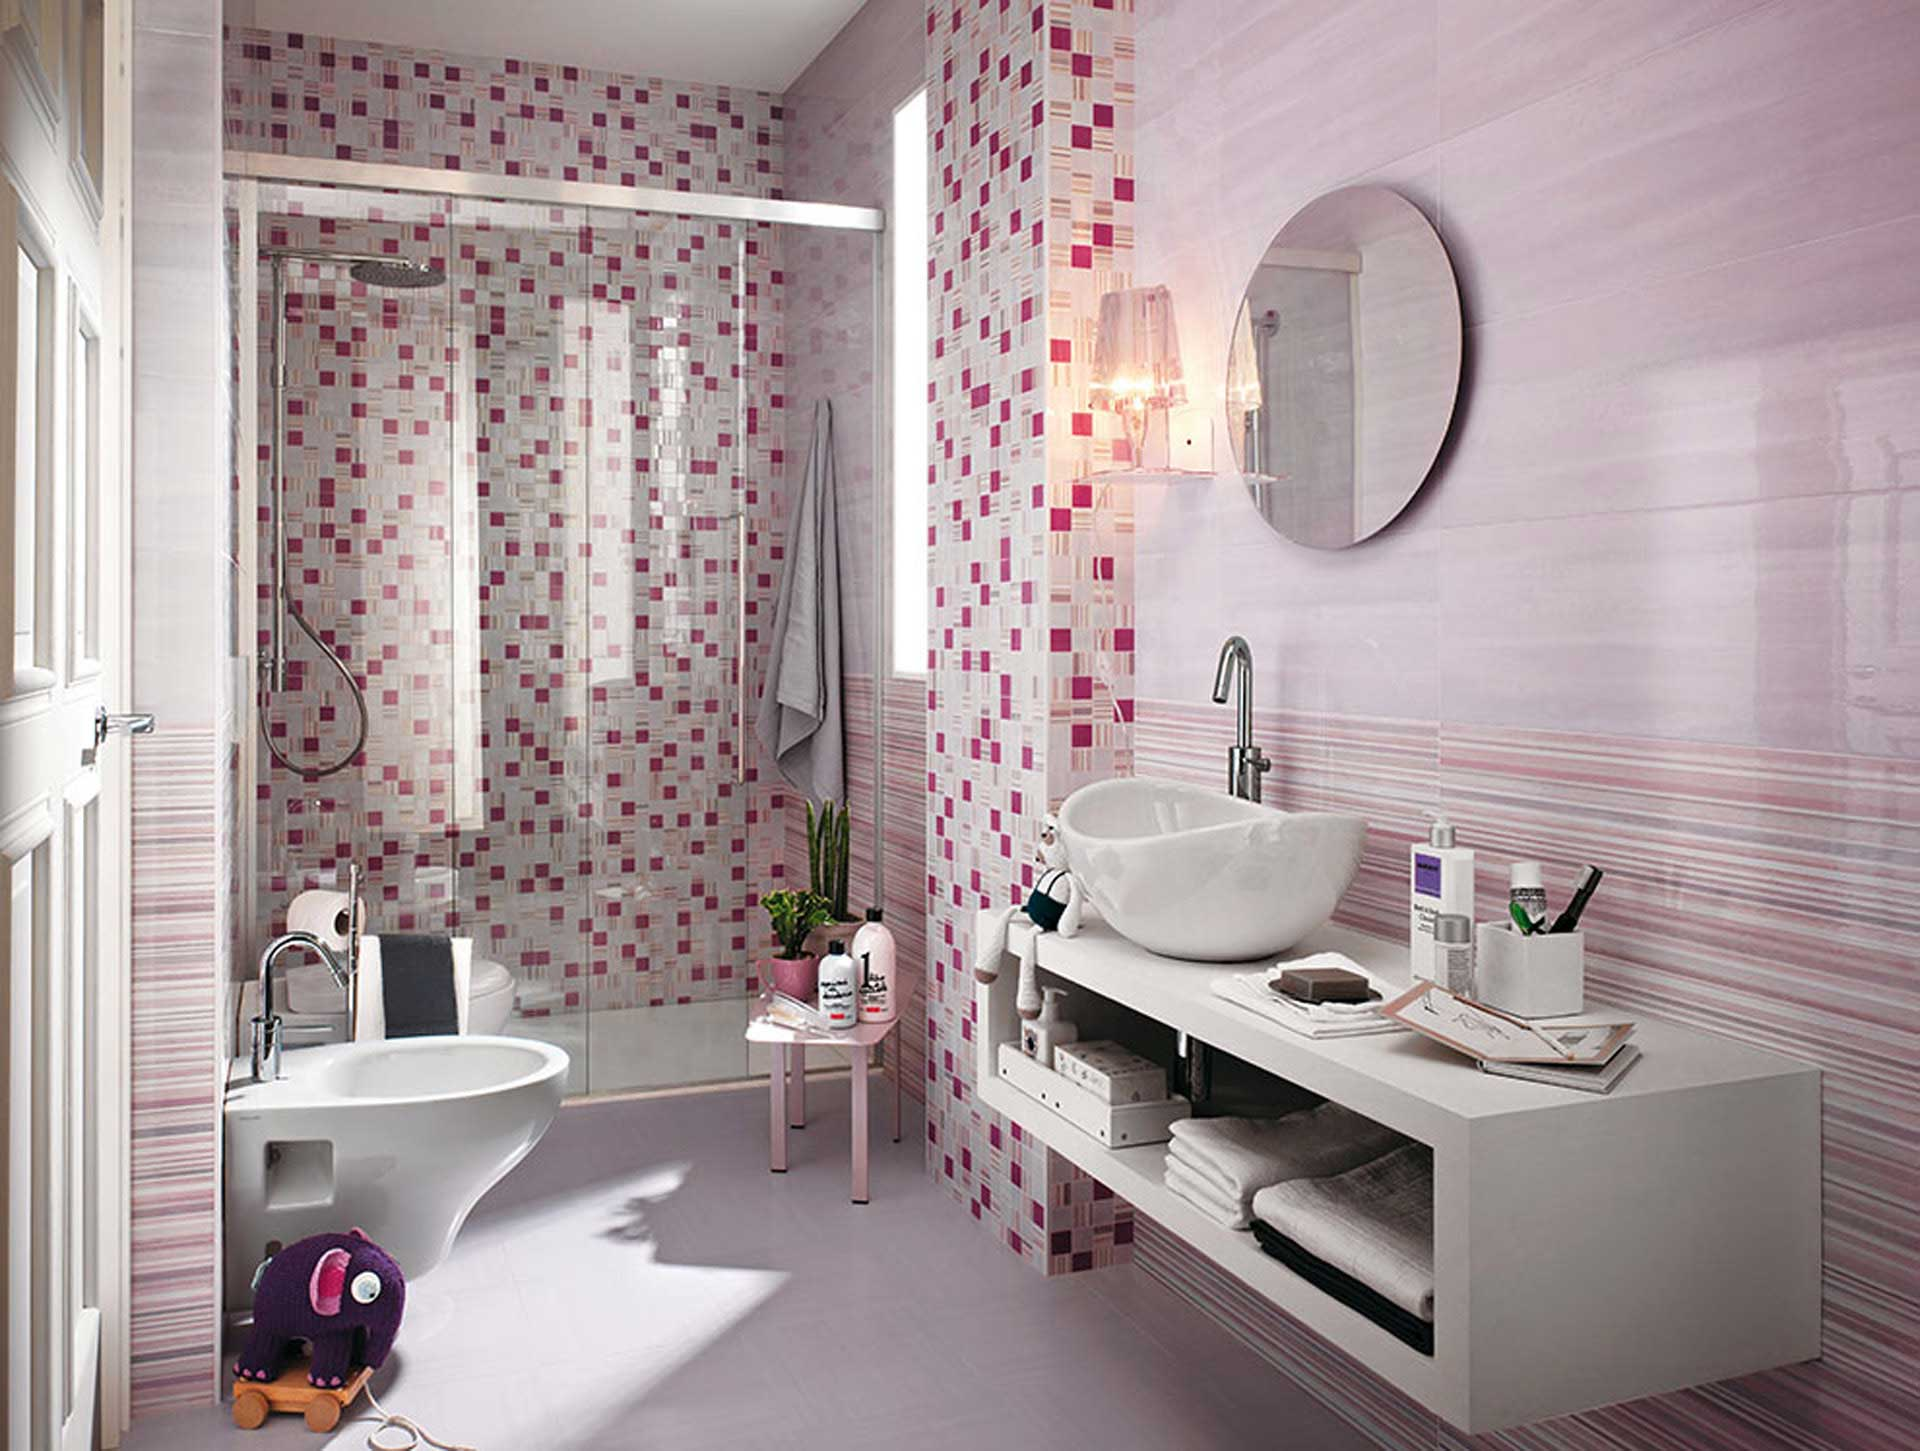 sole un mix di decori e mosaici per il rivestimento bagno orsolini. Black Bedroom Furniture Sets. Home Design Ideas